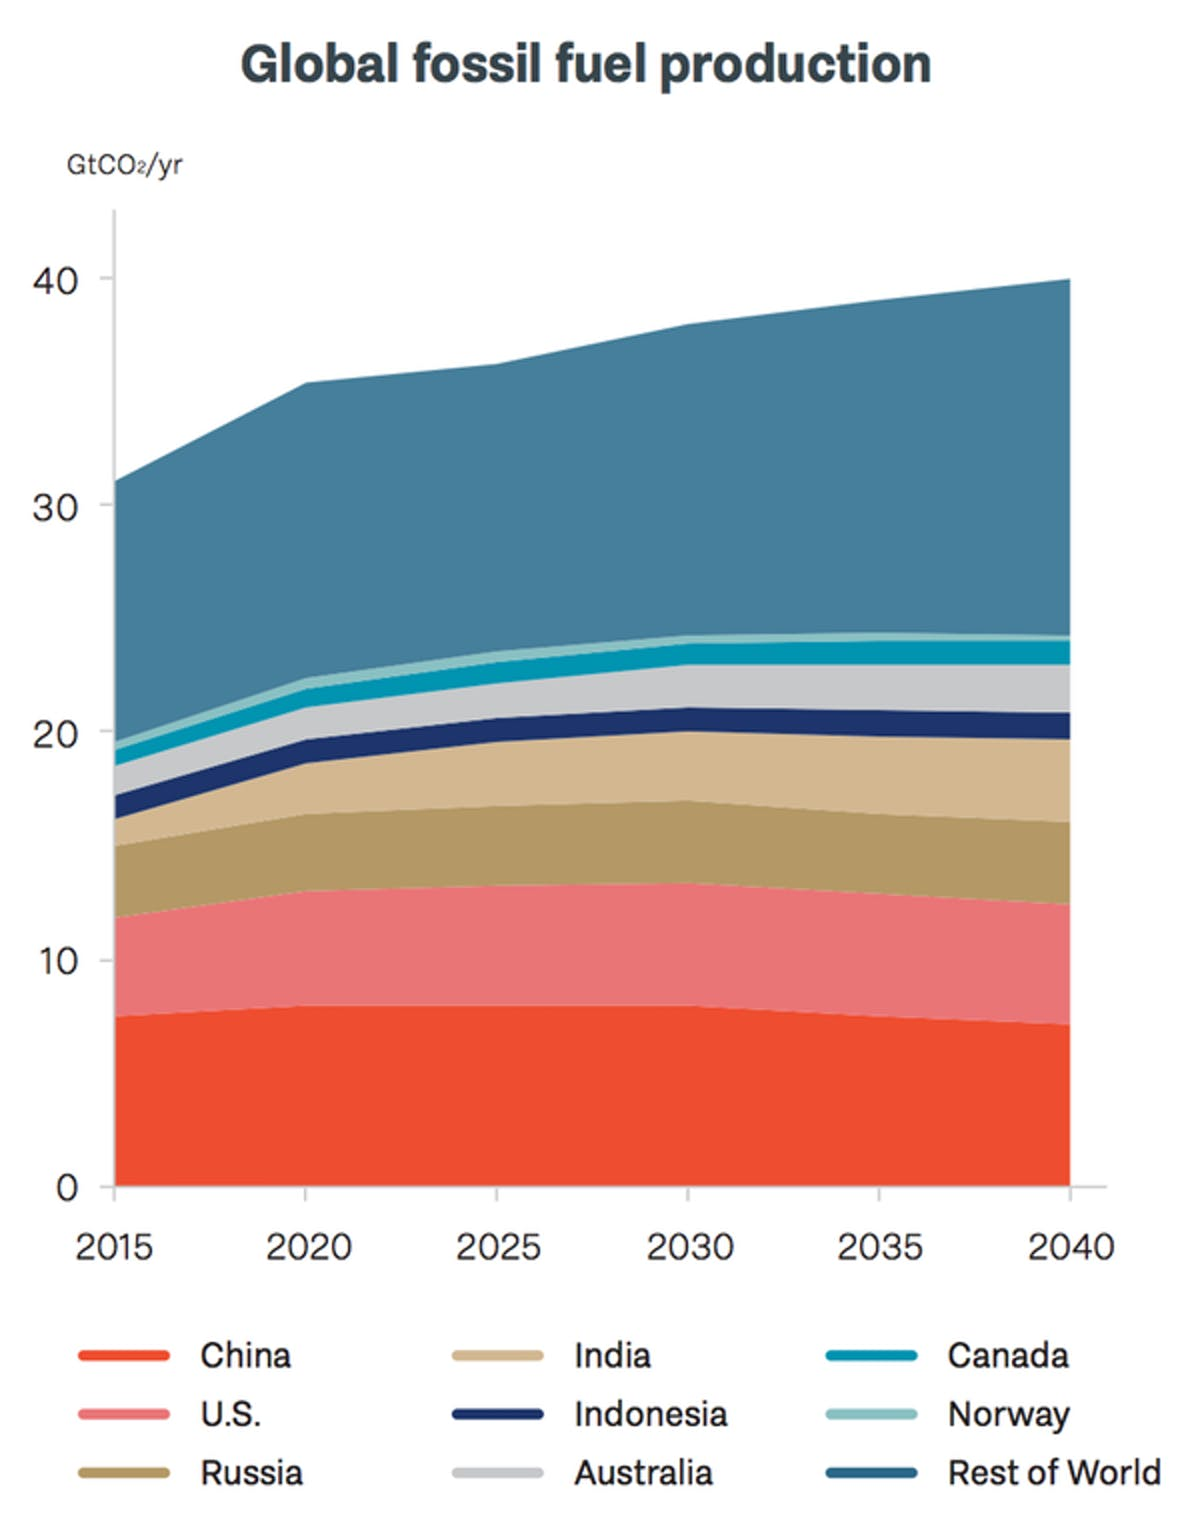 Global fossil fuel production